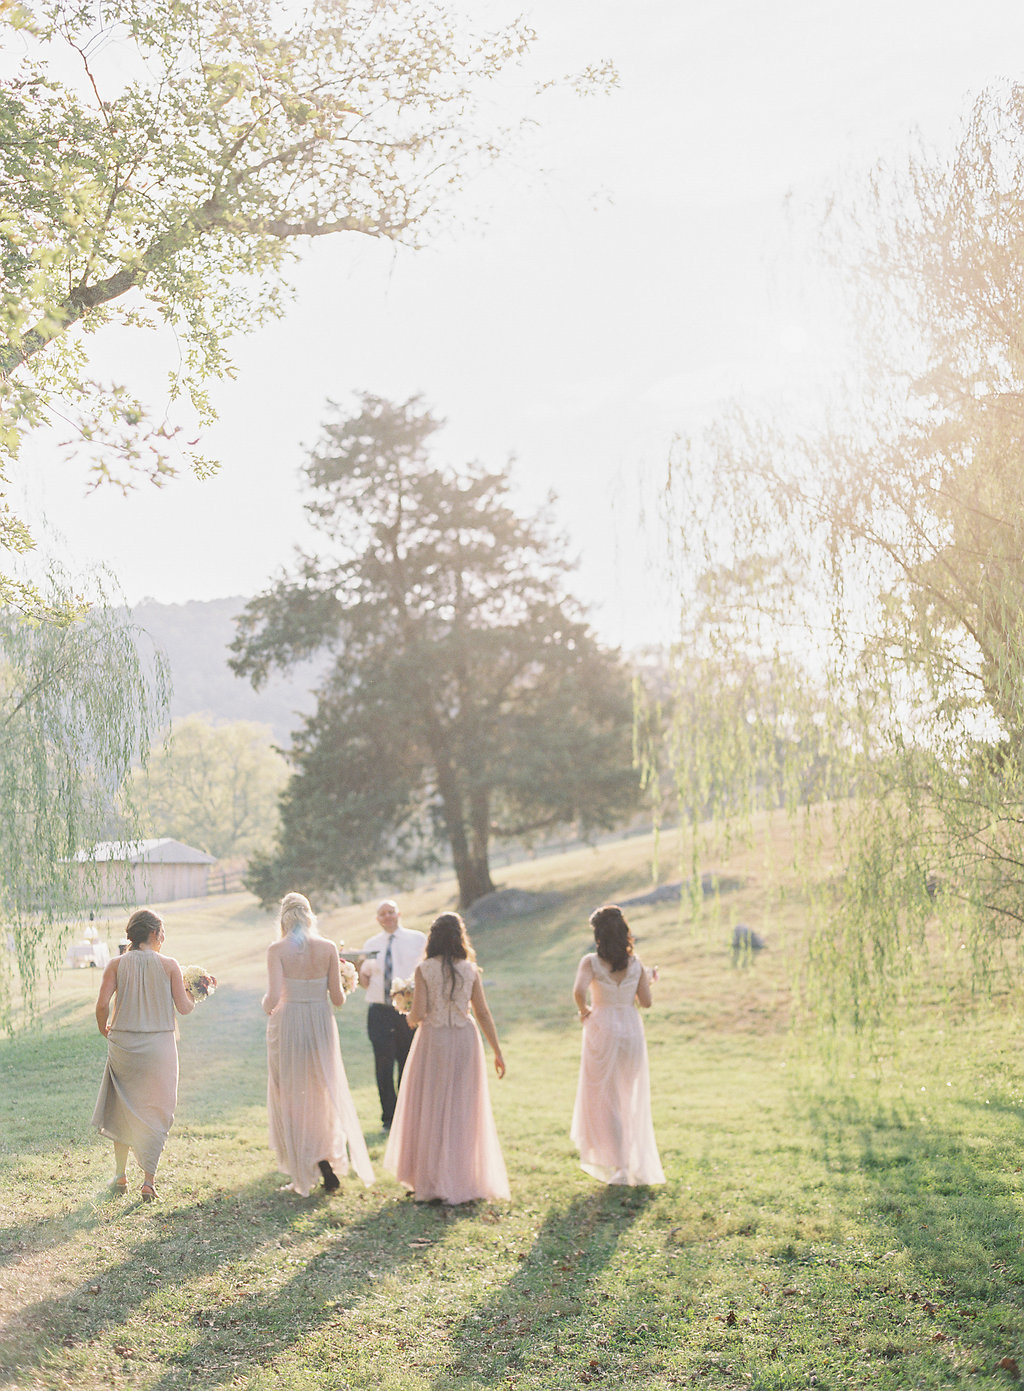 SawyerBaird_CM_Bridesmaids walking